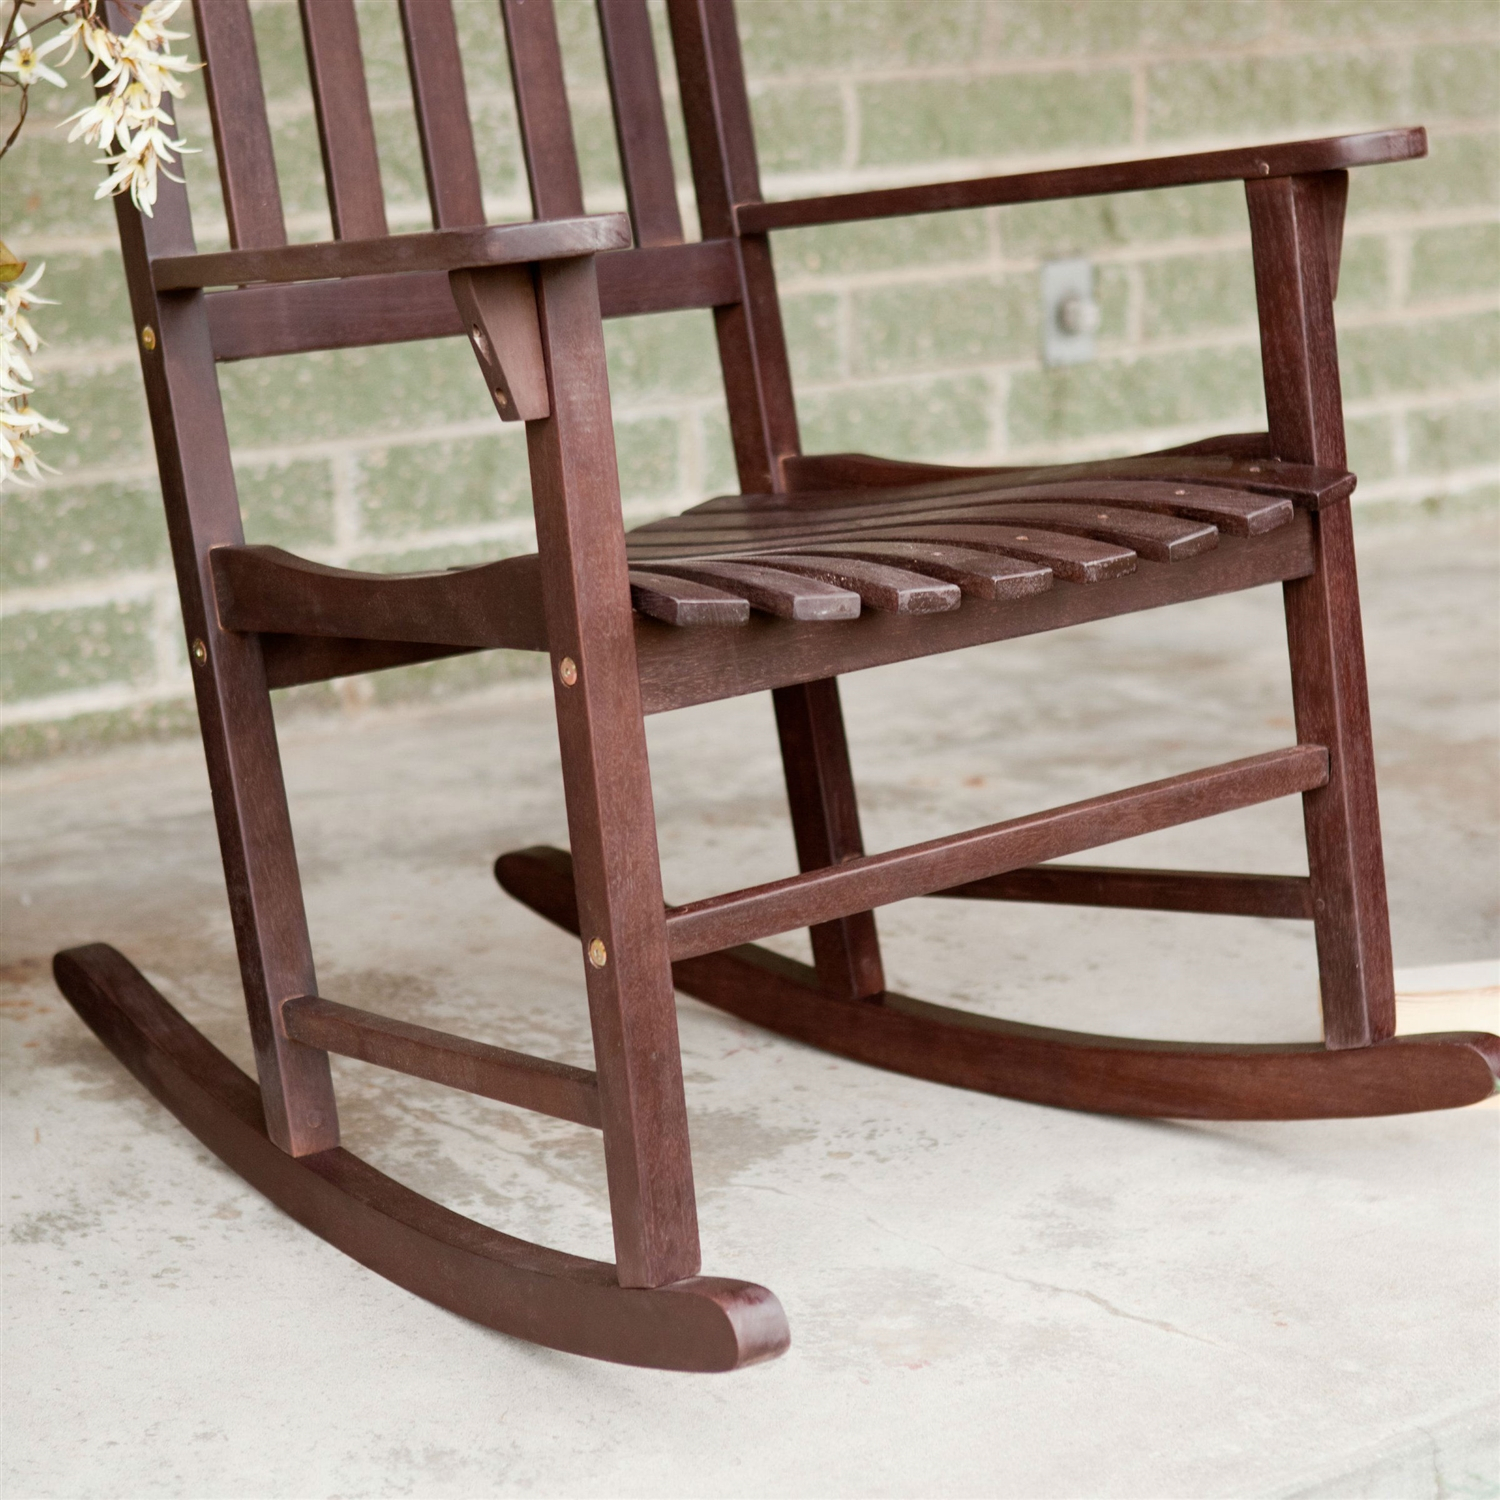 Set Of 2 – Indoor/Outdoor Patio Porch Dark Brown Slat Pertaining To Rocking Sofa Chairs (View 4 of 15)